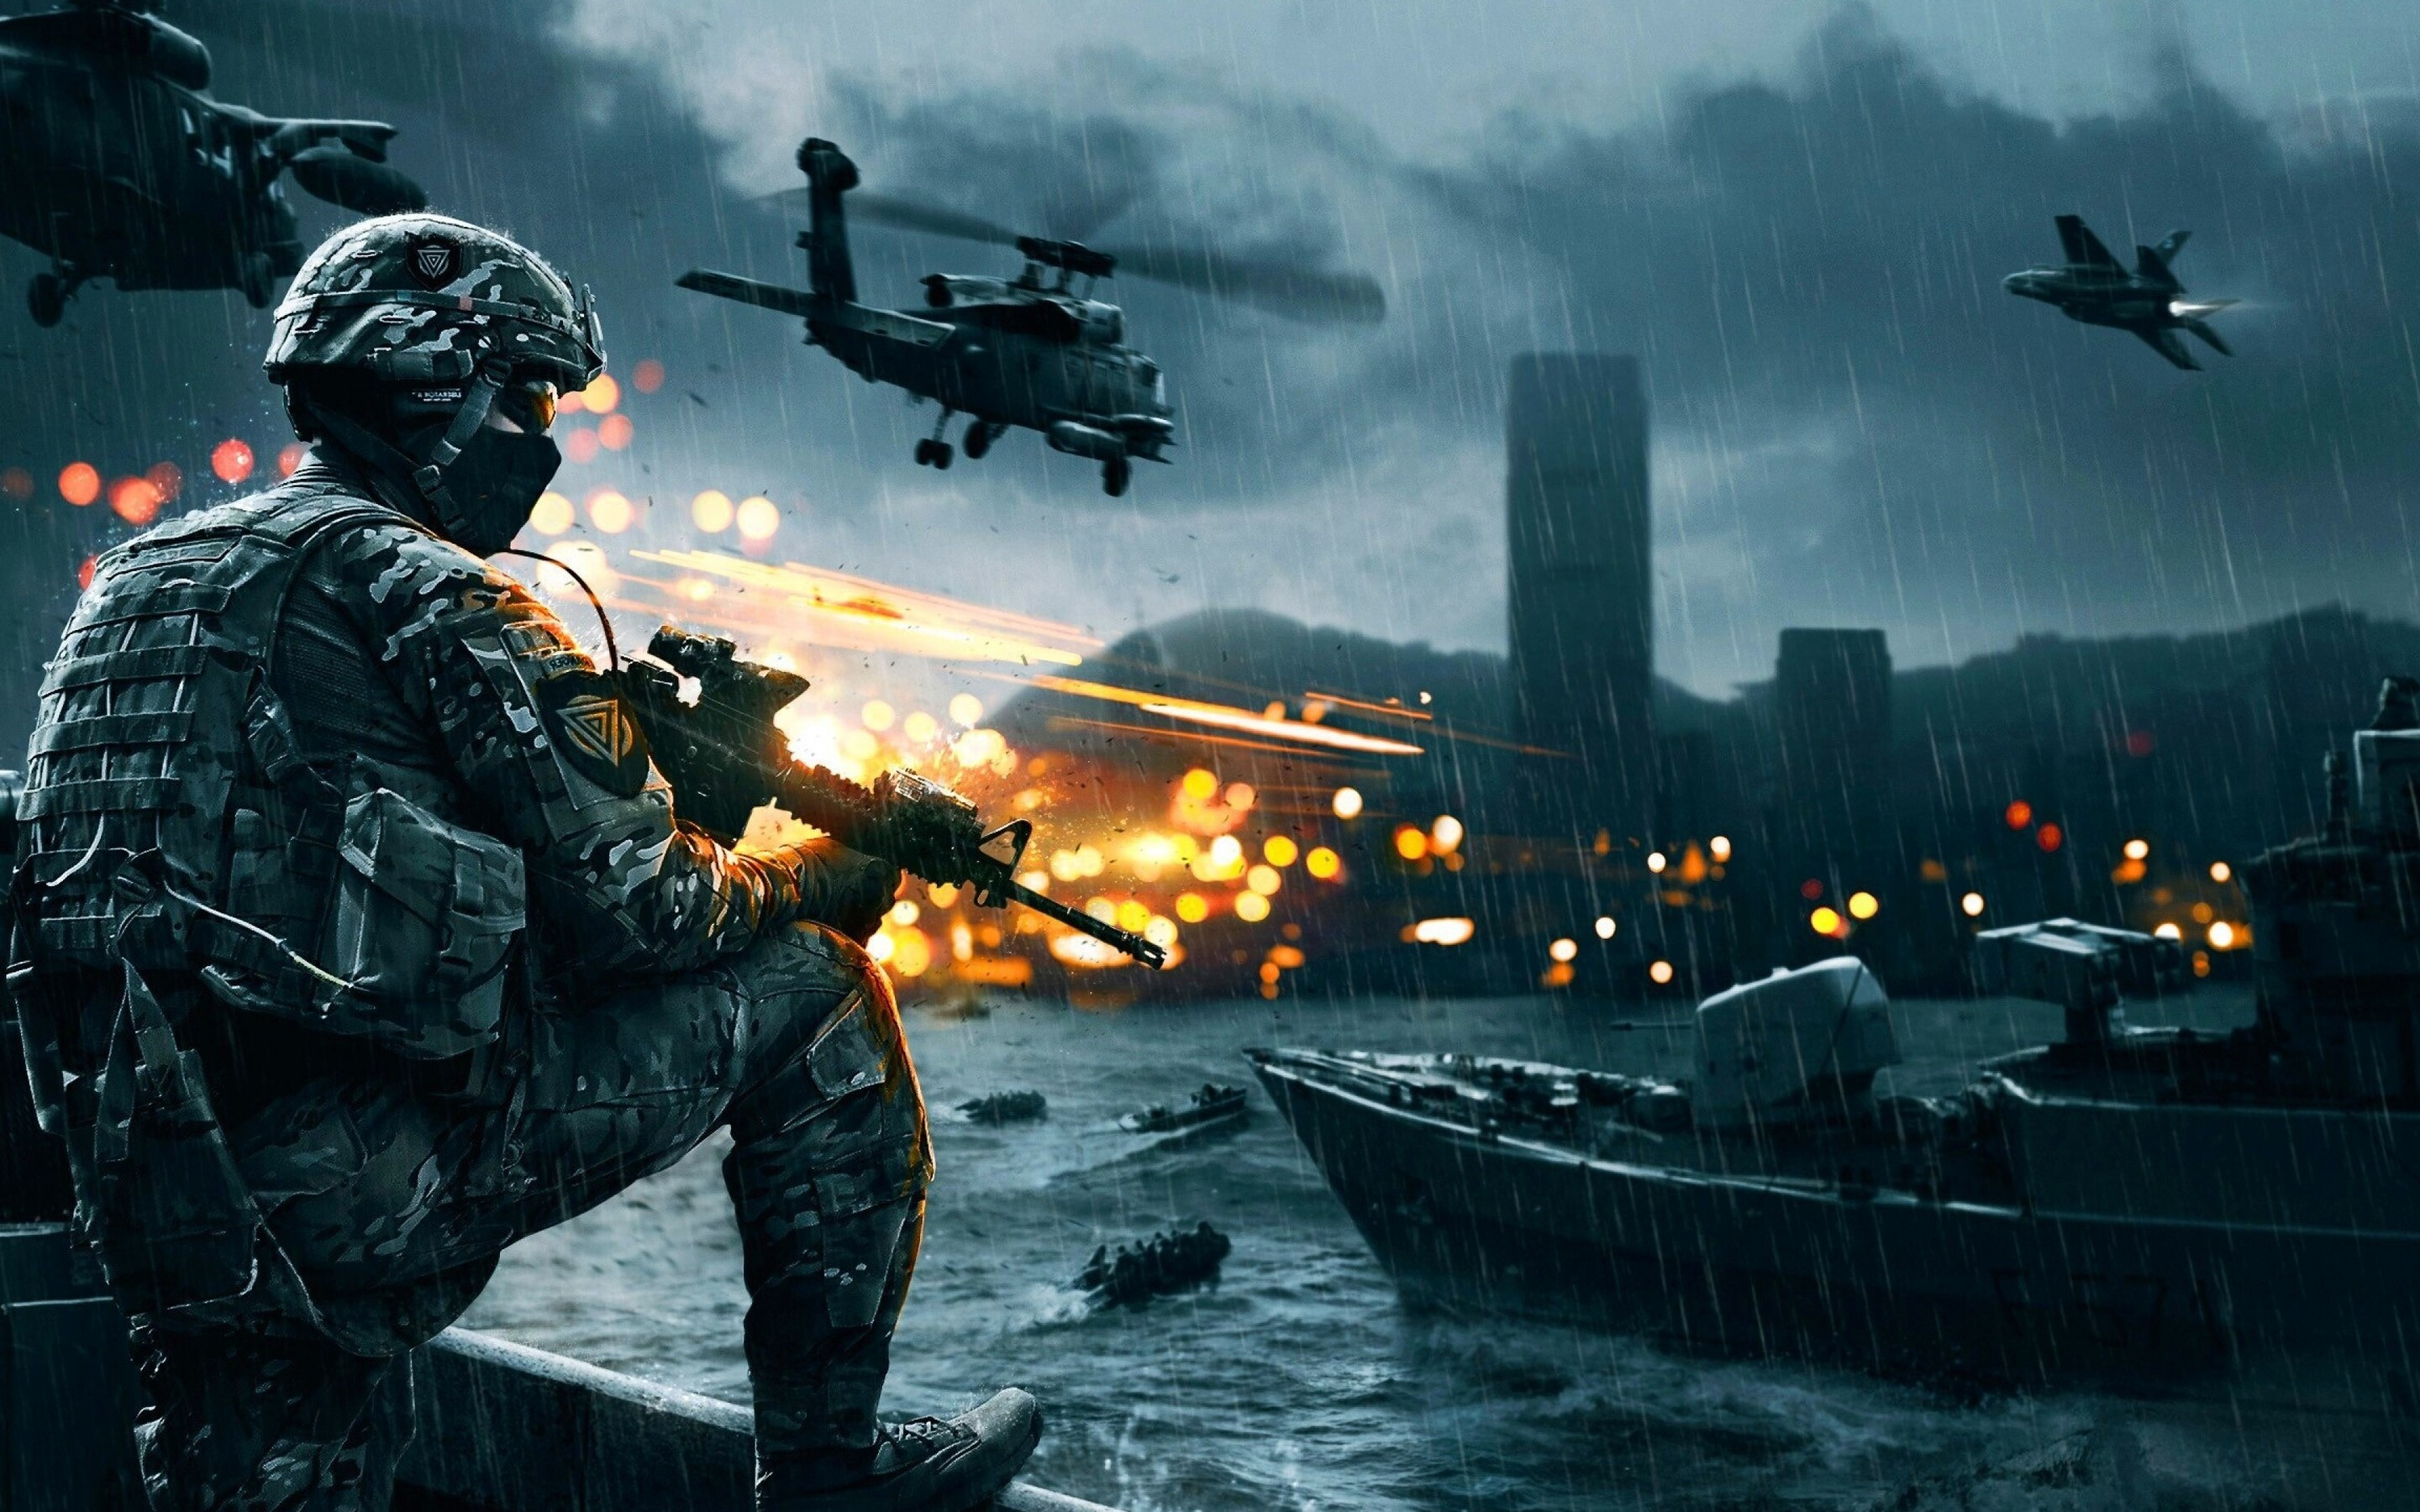 Download Wallpaper 1280x1280 Battlefield 4 Game Ea: 2880x1800 Battlefield 4 Macbook Pro Retina HD 4k